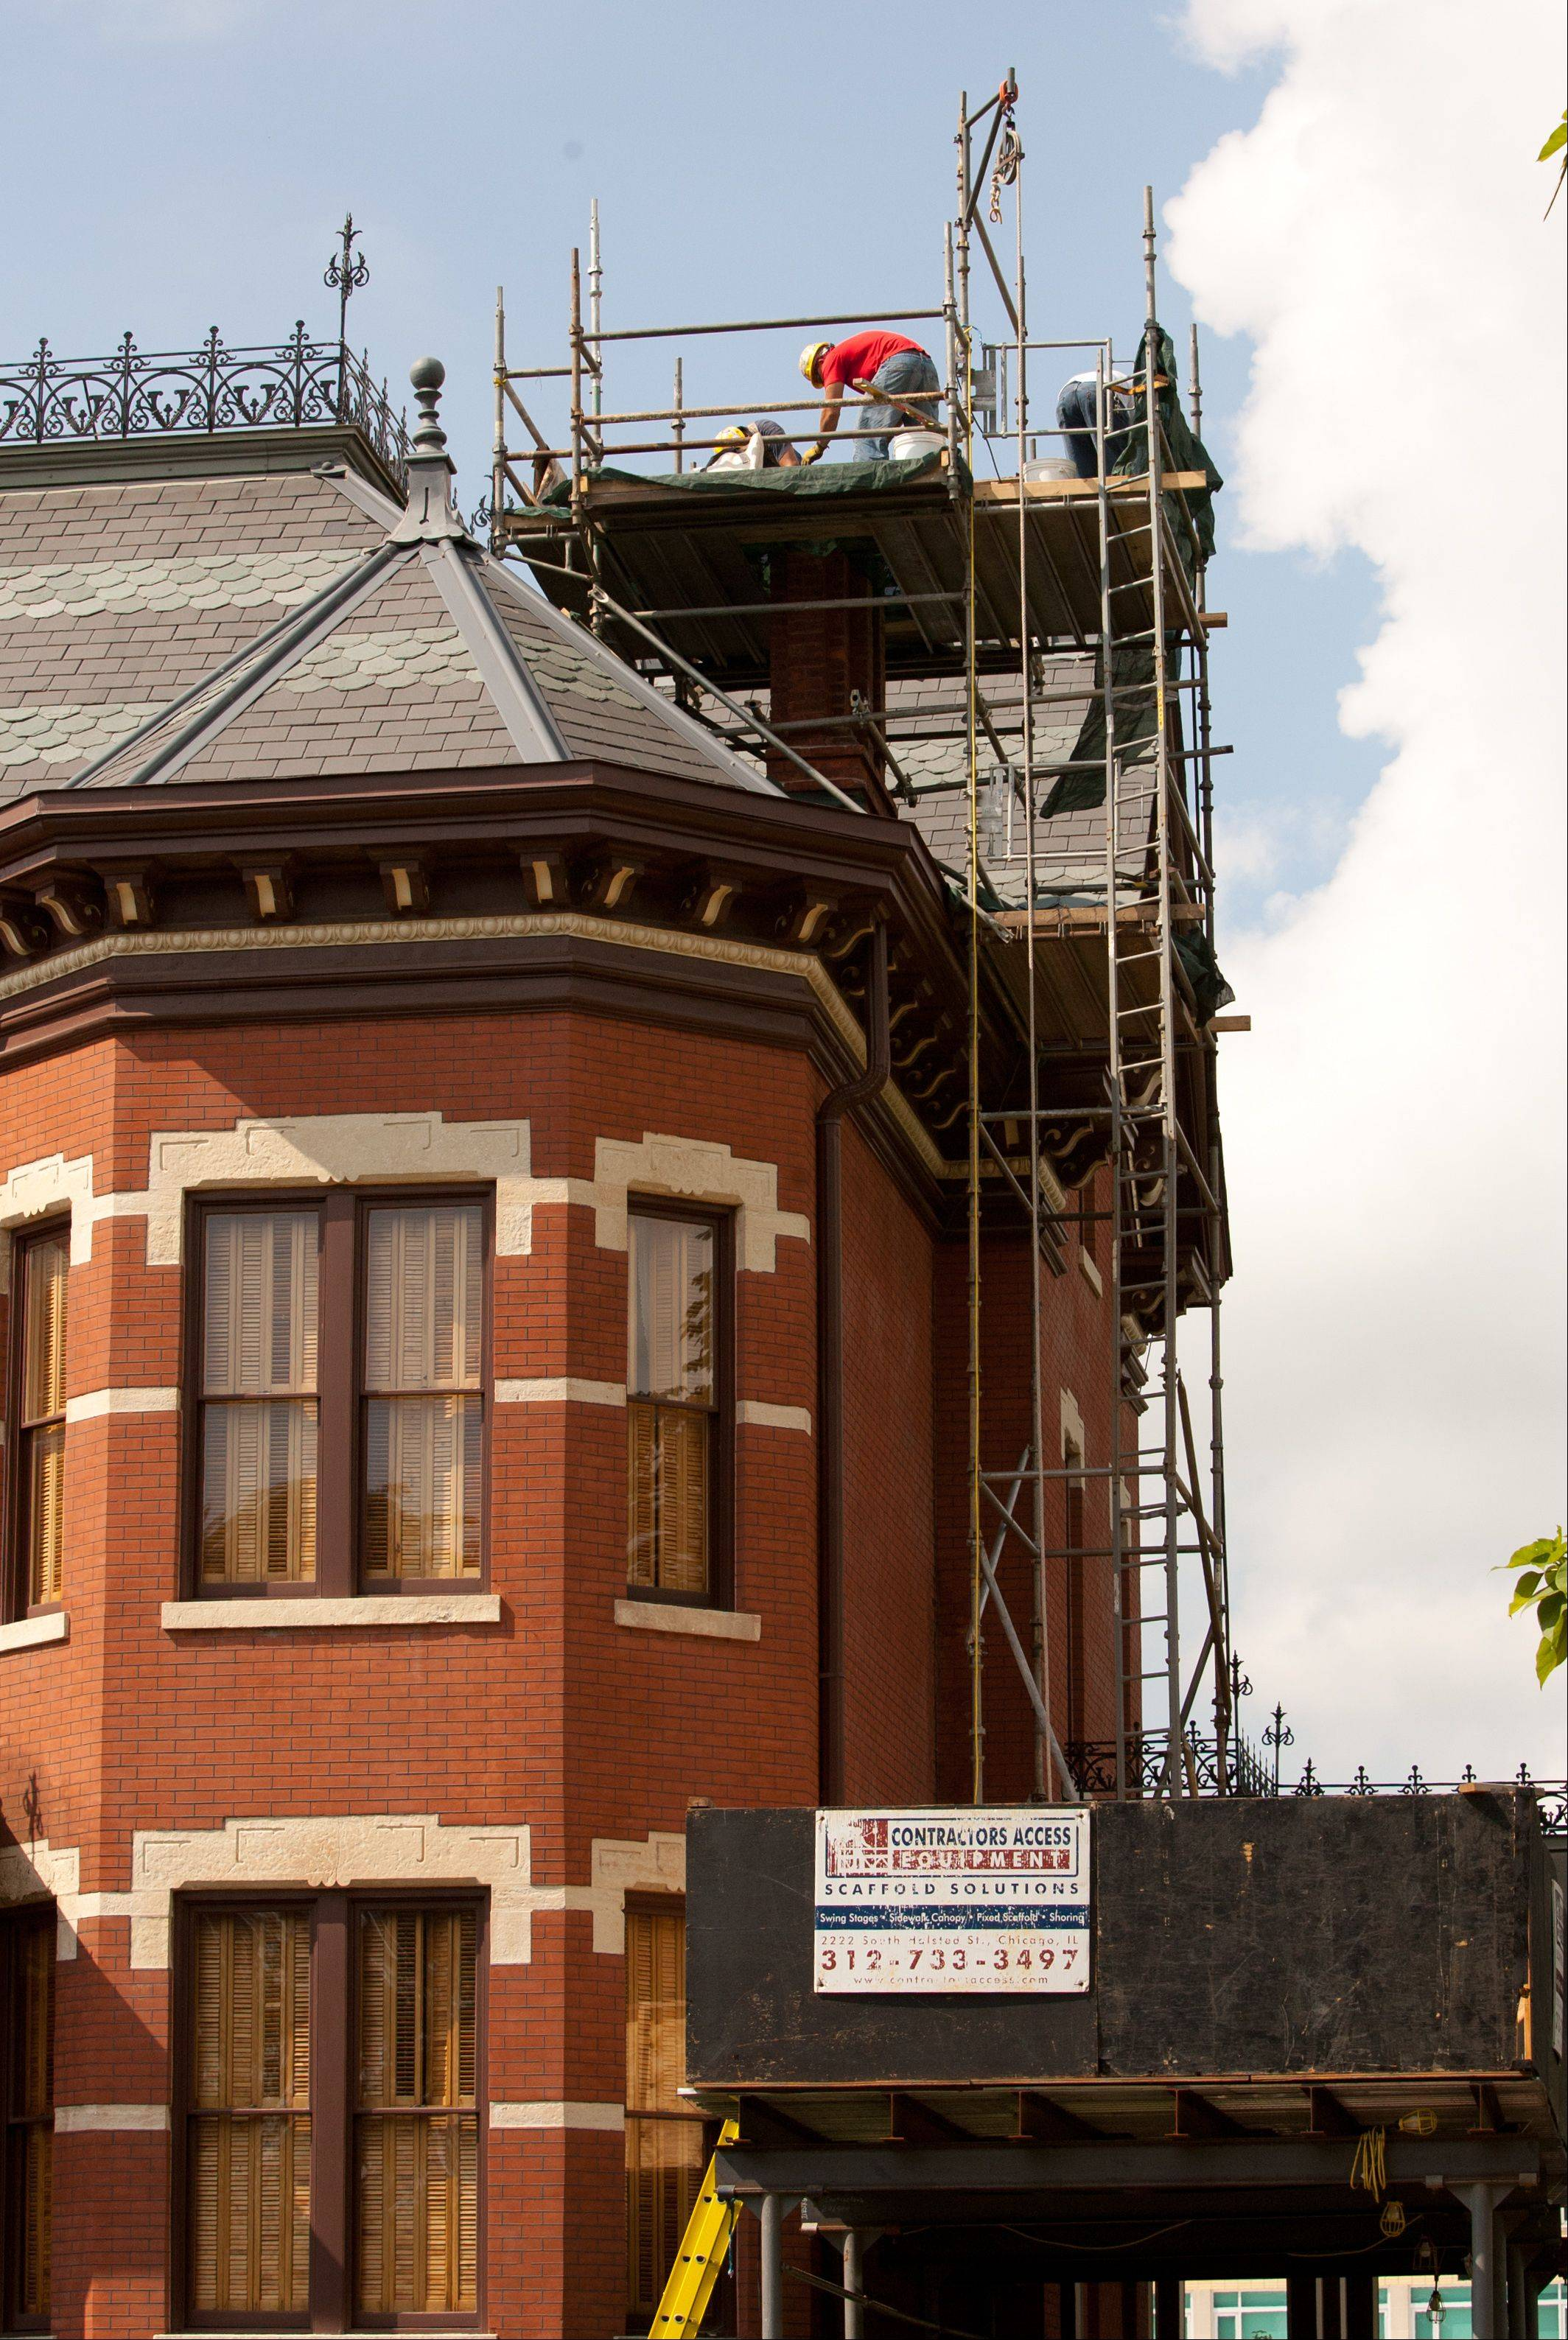 Naper Settlement's Martin Mitchell Mansion is undergoing emergency chimney repairs to fix problems found during a building assessment that began in May.